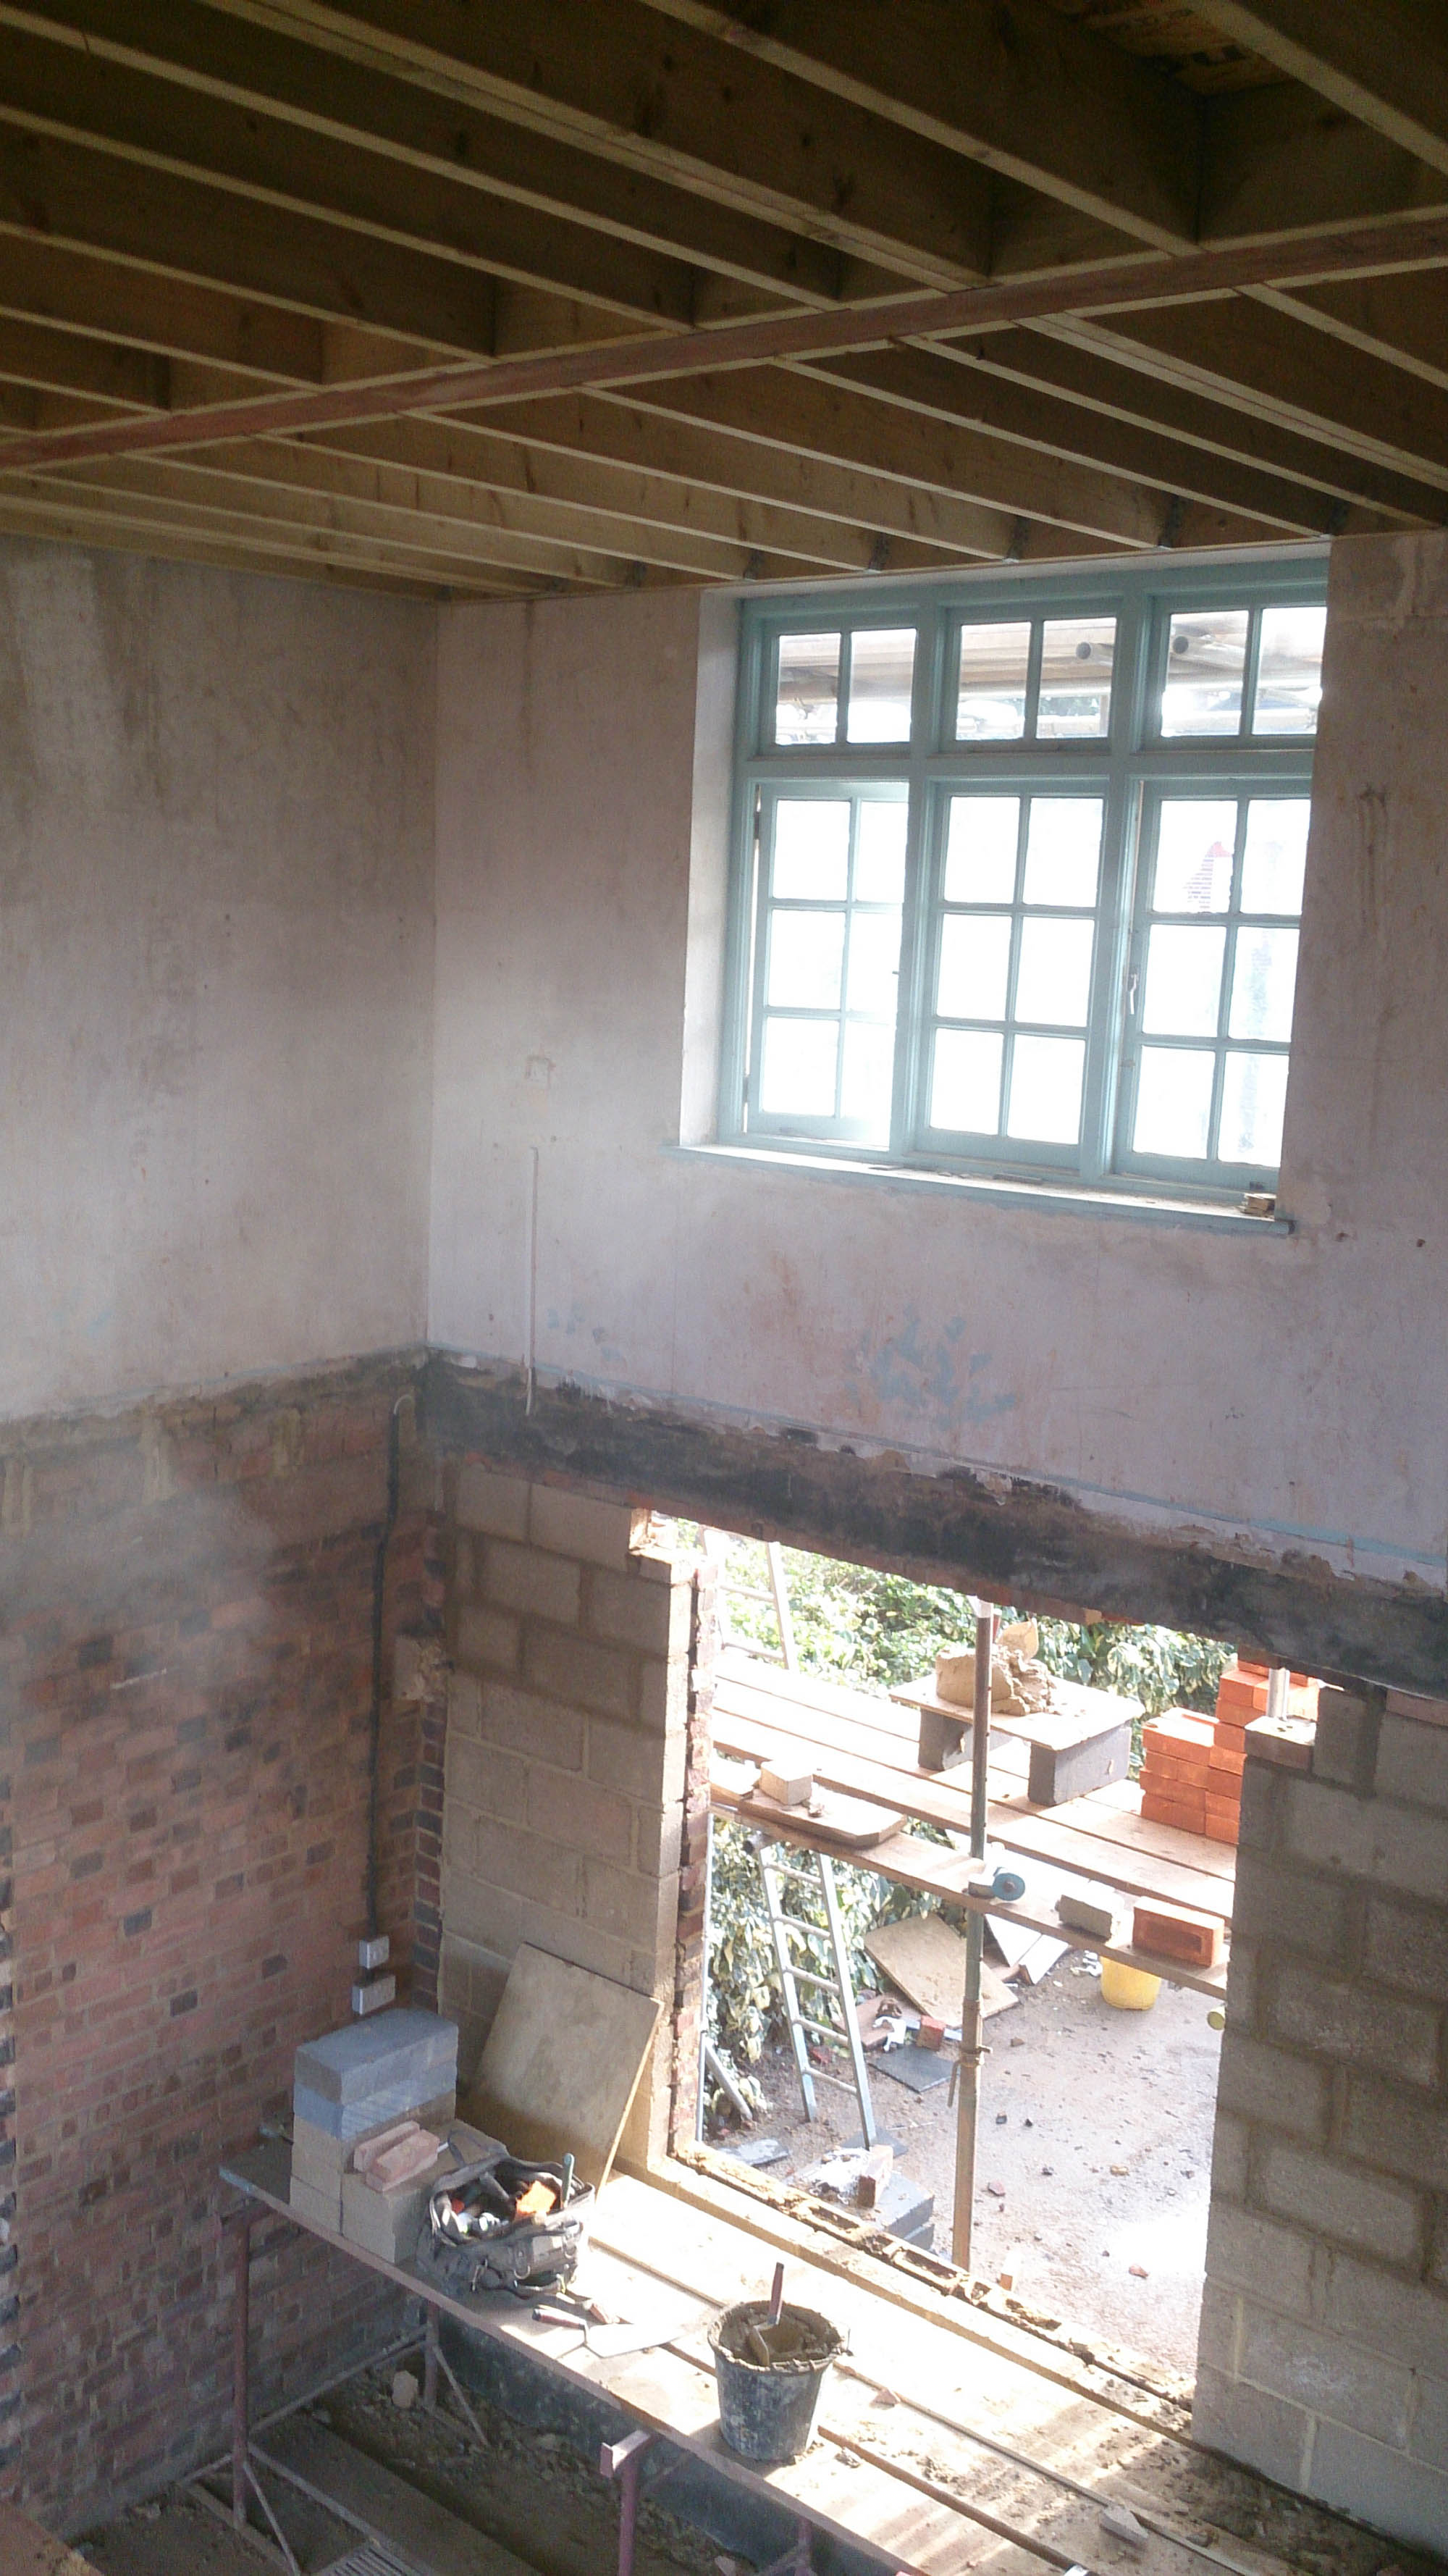 Interior work in progress photo from Putney restoration project